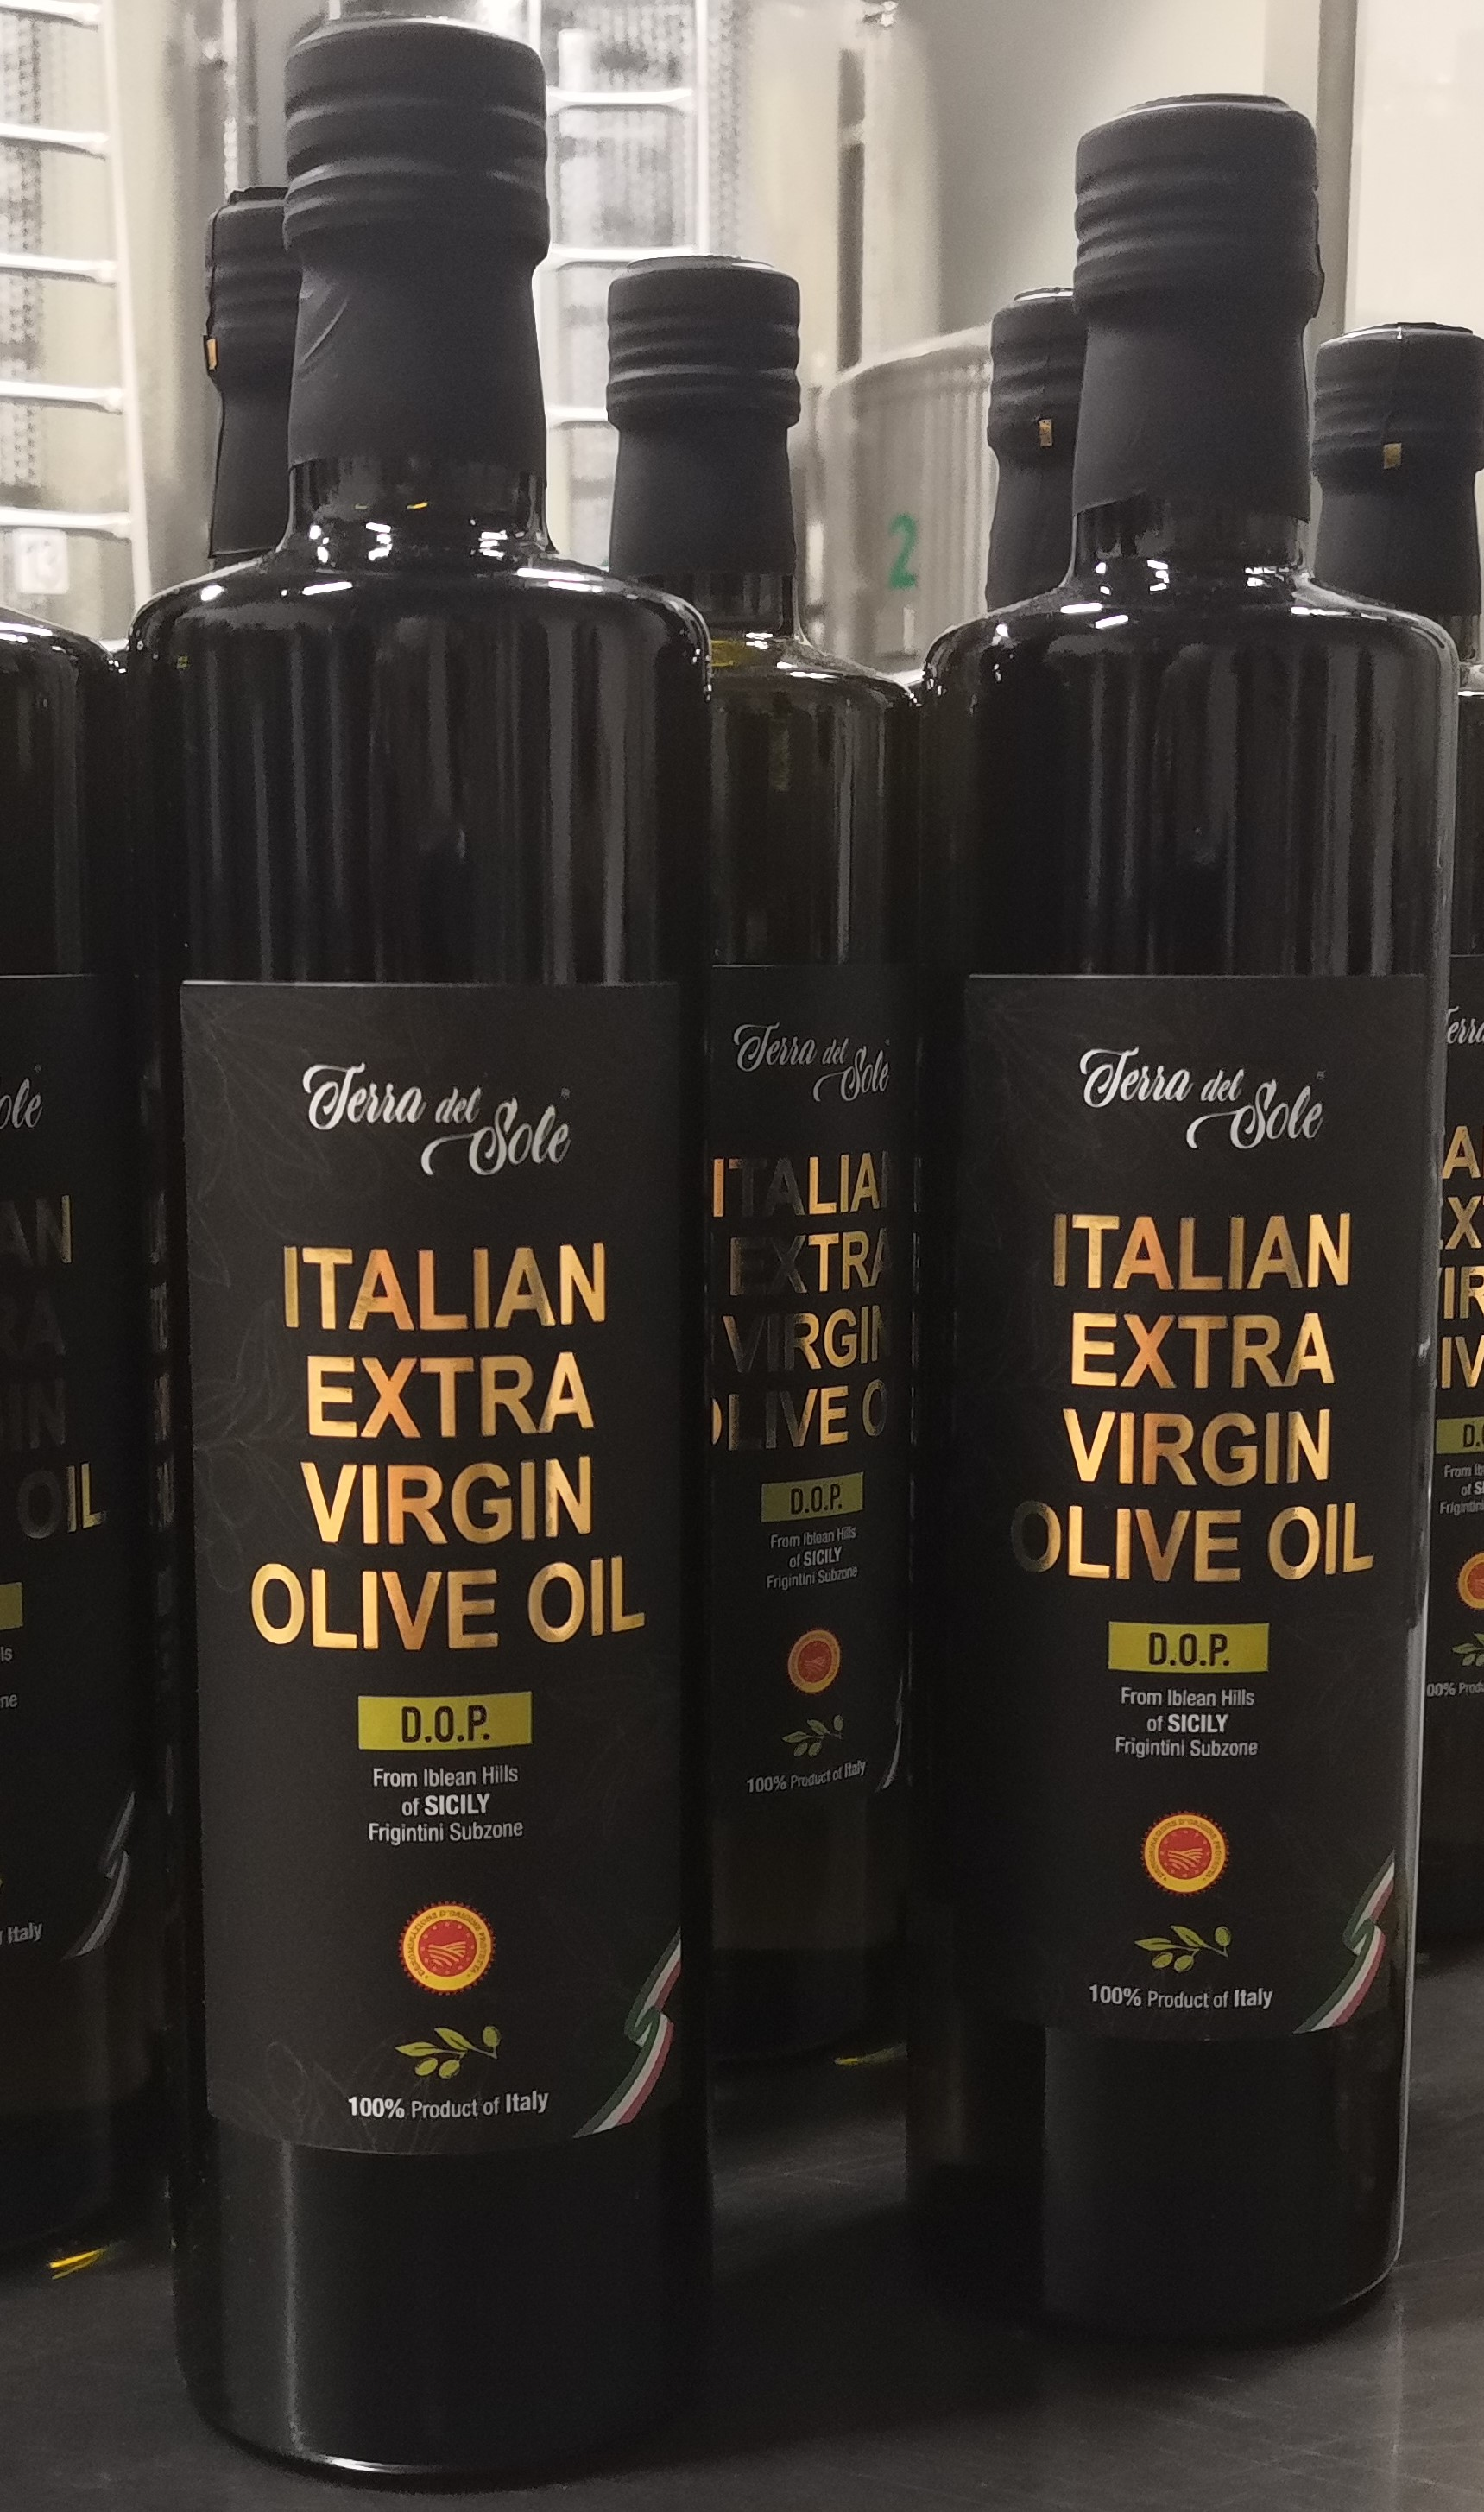 Extra Virgin Olive Oil DOP - Terra del Sole - 750 ml ( 25.36 fl oz) Imported from Italy